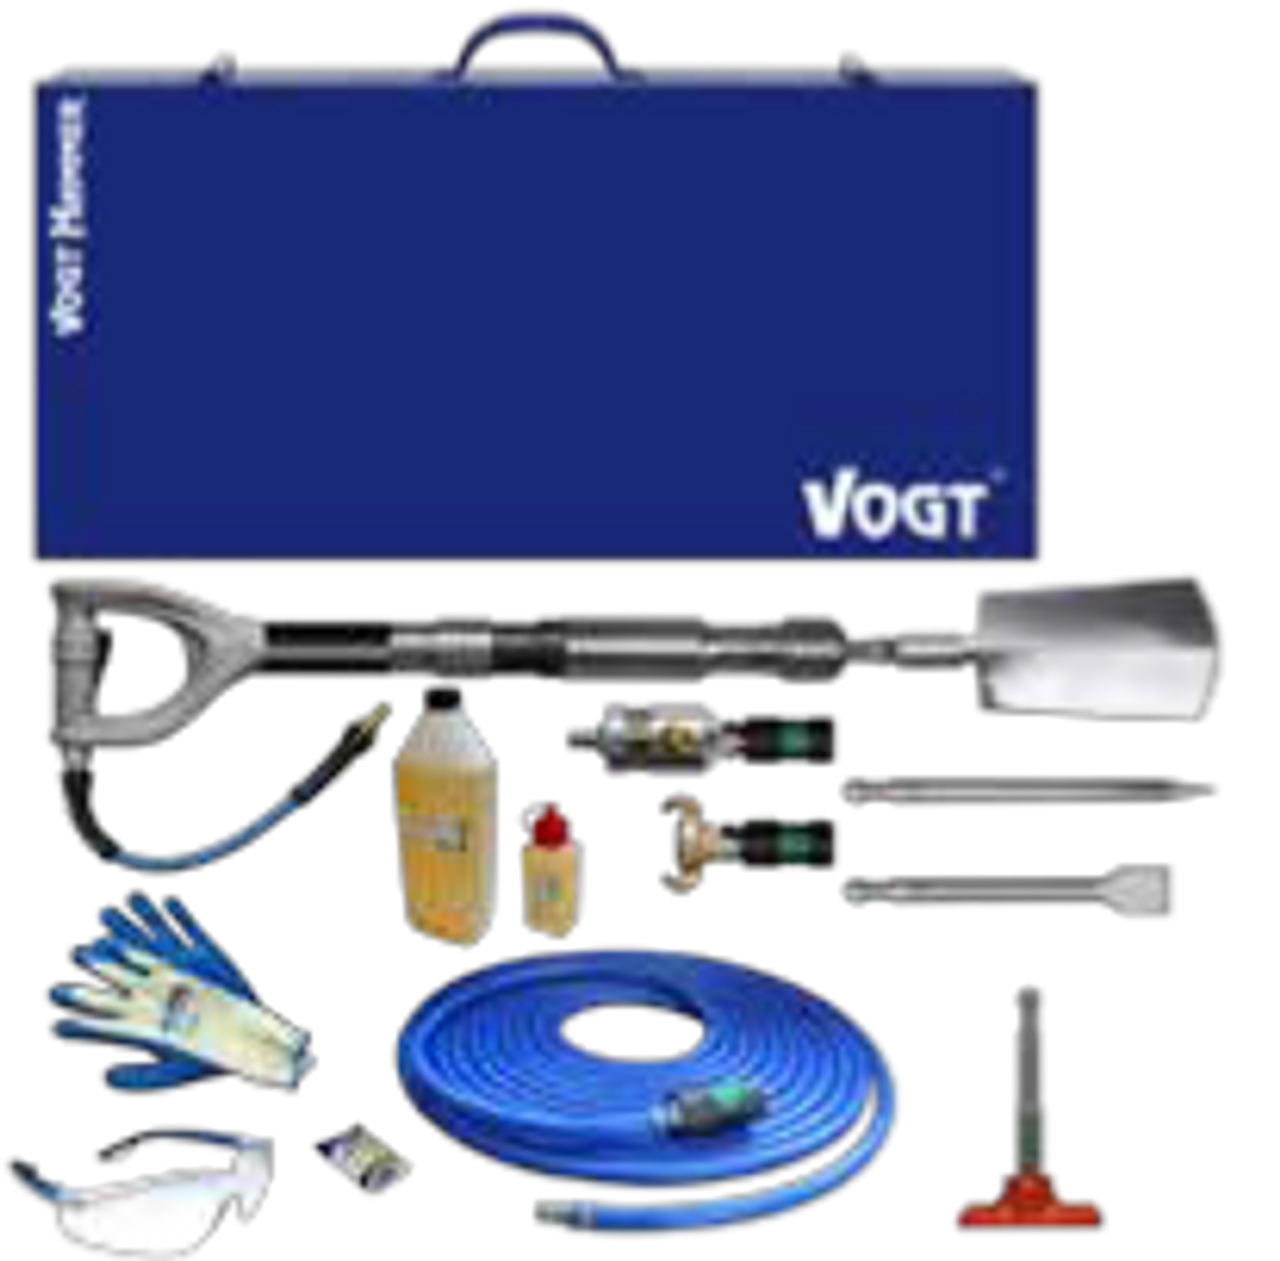 VOGT with Delta-handle combines all benefits of the T-handle and inline handle.  where vertical and horizontal excavation works need to be done, it is well accepted as an all-rounder. The aluminium-handle fits well in the hand because it´s completely cast out of one piece and connected to the stick and hammer mechanism. Compact construction and weight distribution simplifies working.